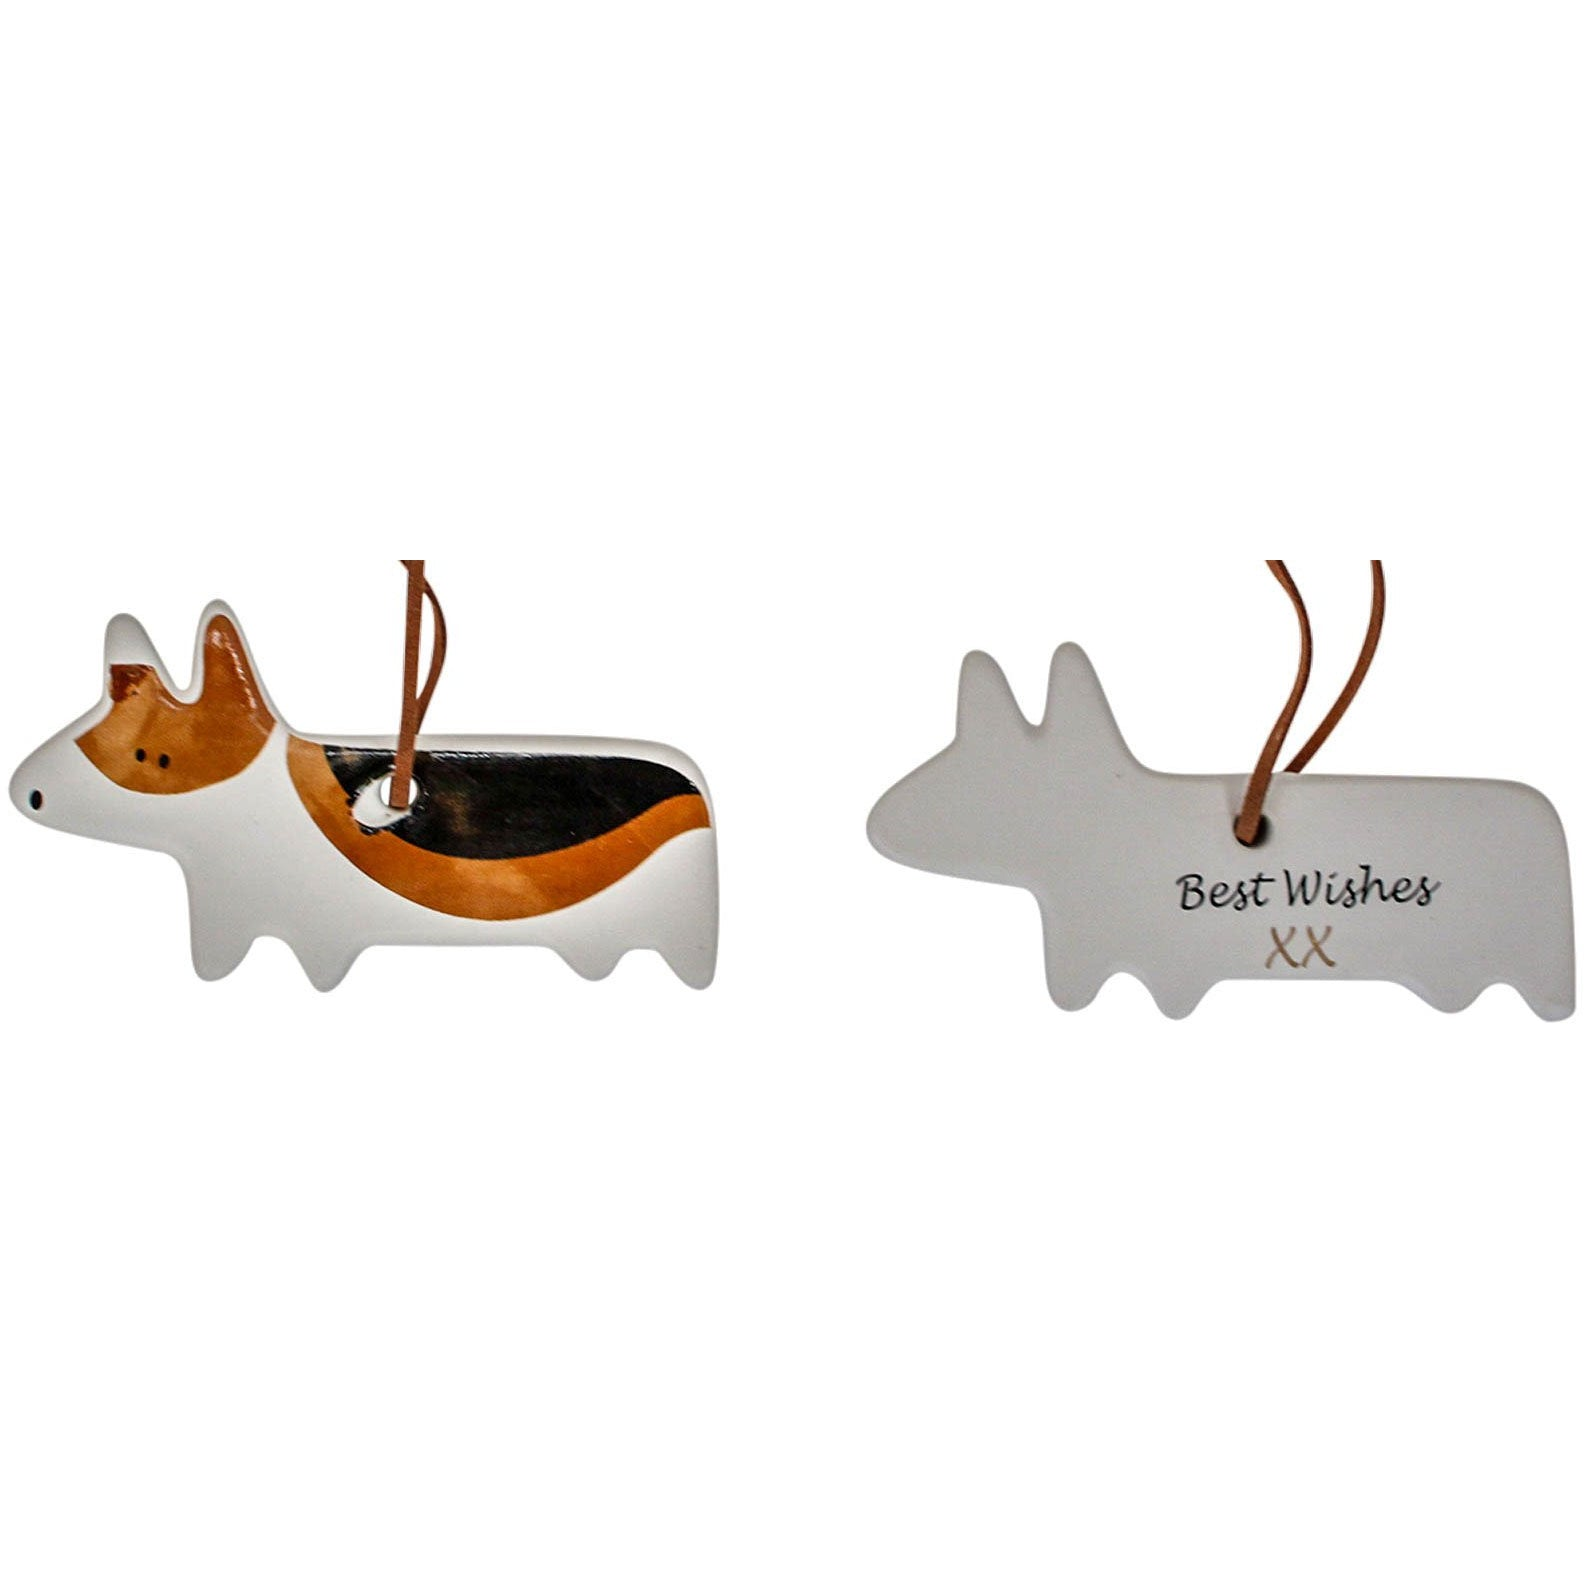 Hanging Ceramic Dog - Fido Best Wishes